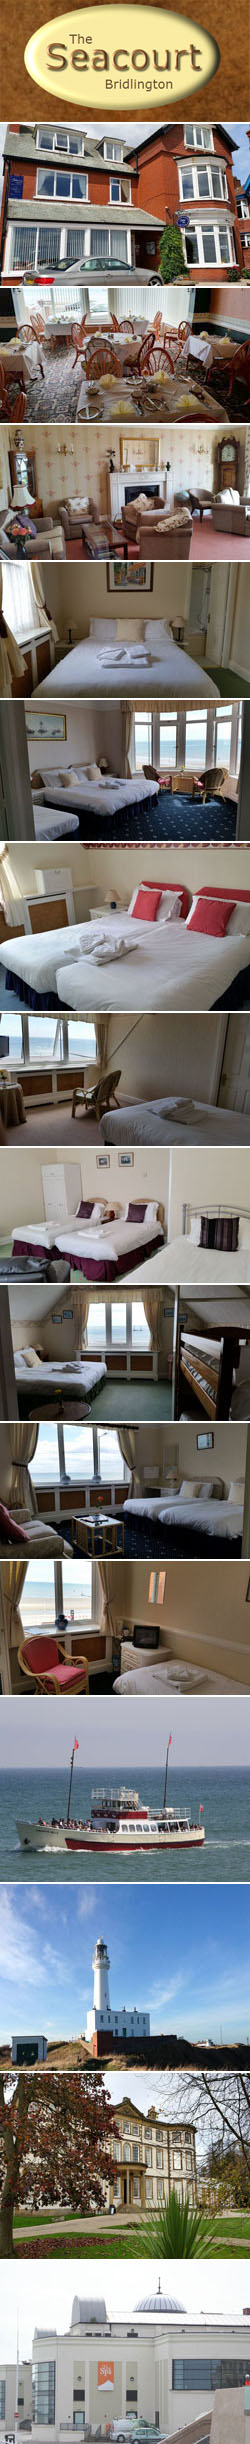 The Seacourt | Bridlington